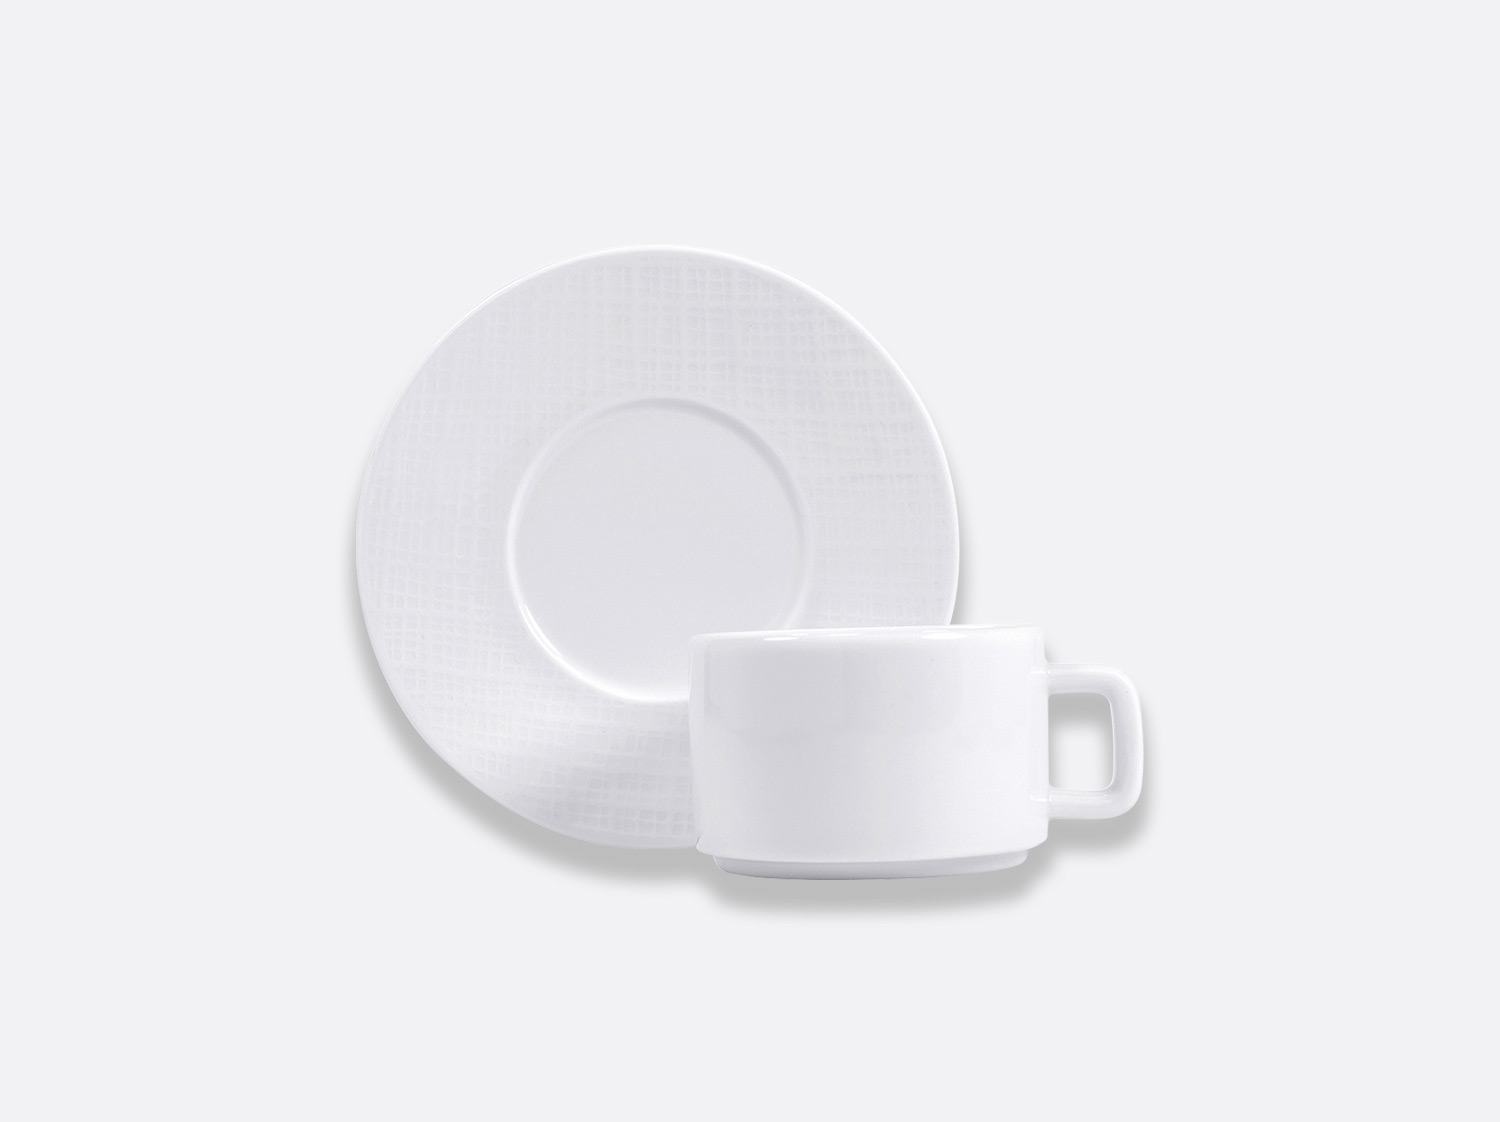 Tasse et soucoupe thé empilable 15 cl en porcelaine de la collection ORGANZA BLANC Bernardaud